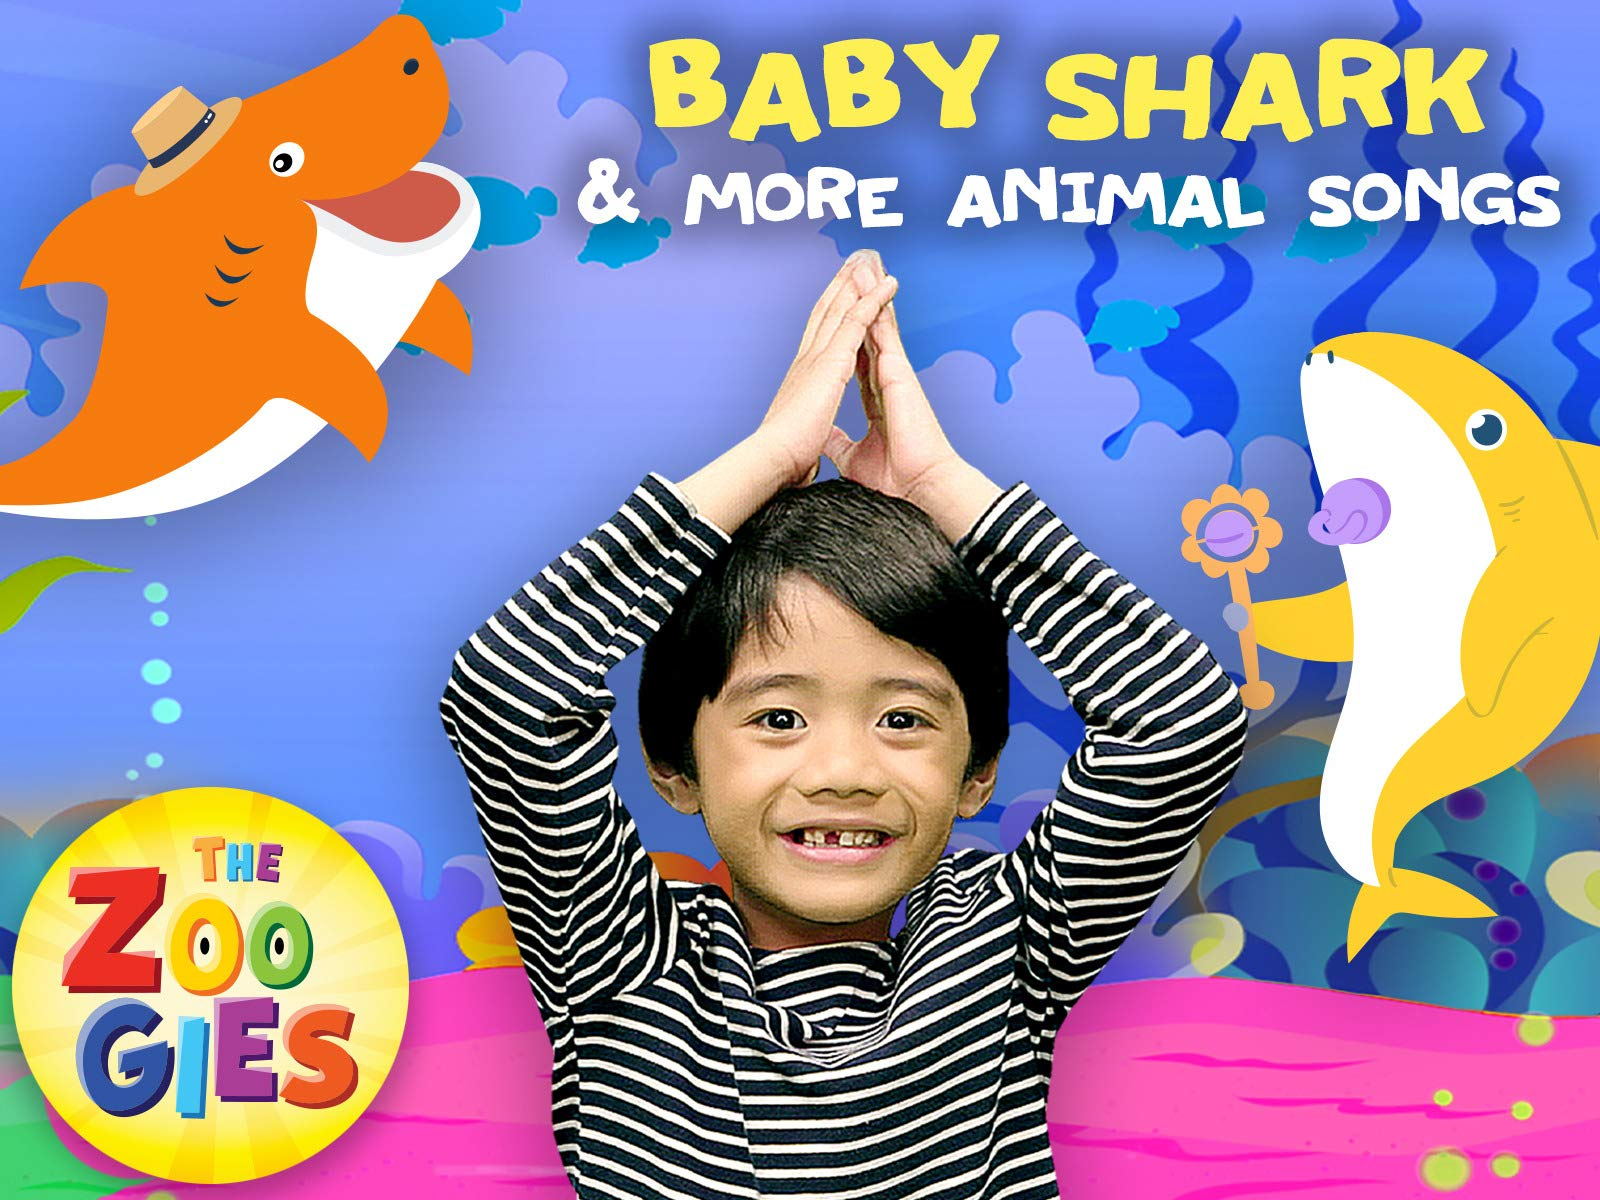 The Zoogies | Baby Shark & more Animal Songs on Amazon Prime Instant Video UK